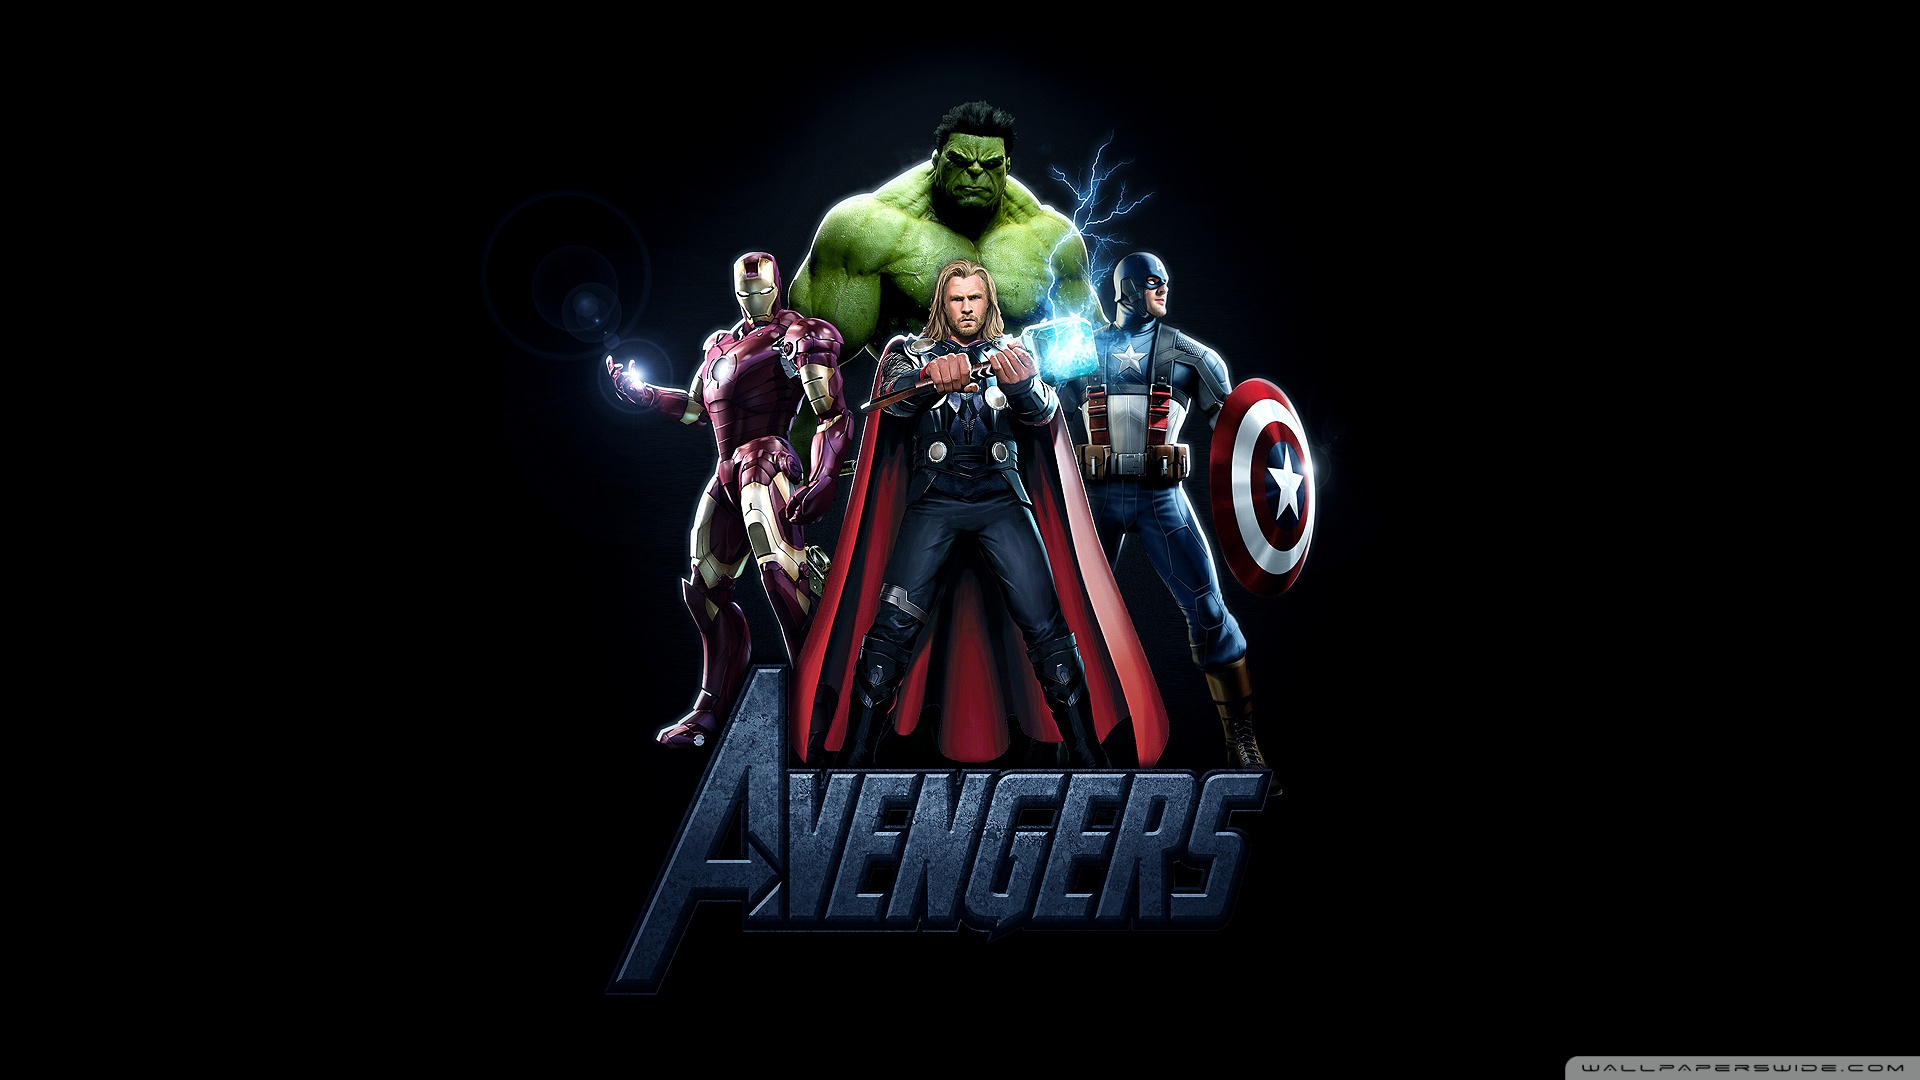 The Avengers Movie 2012 HD desktop wallpaper